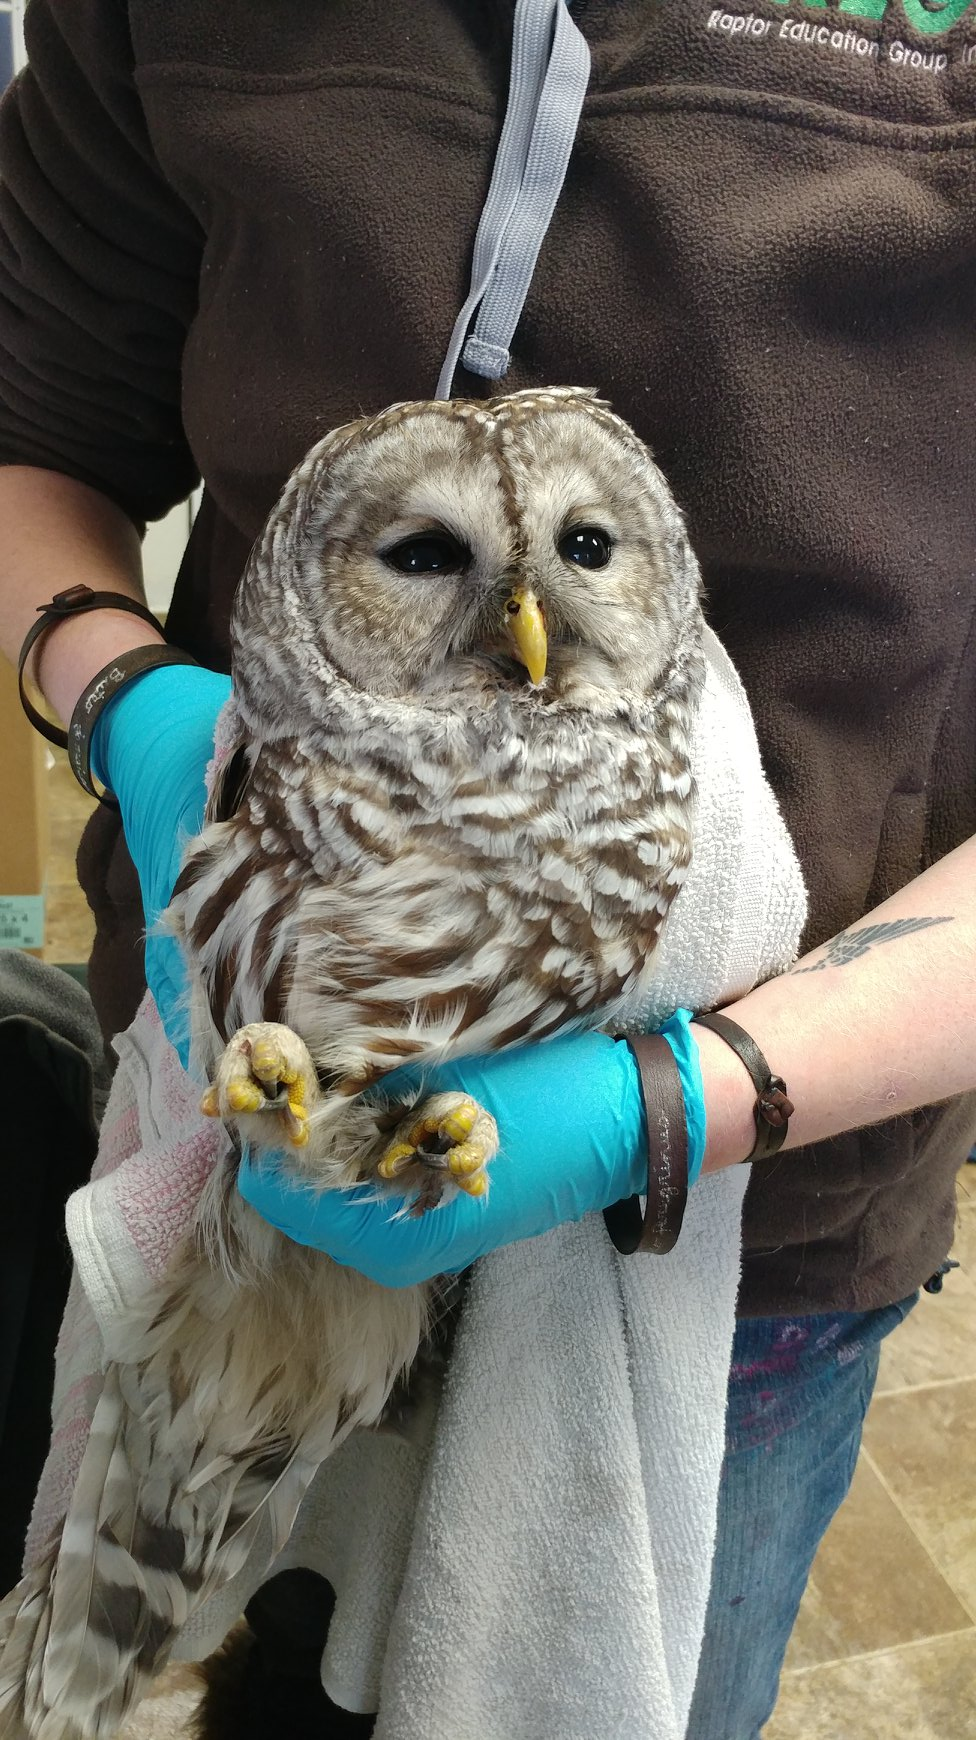 Barred owls are often hit by cars as they hunt rodents at night.